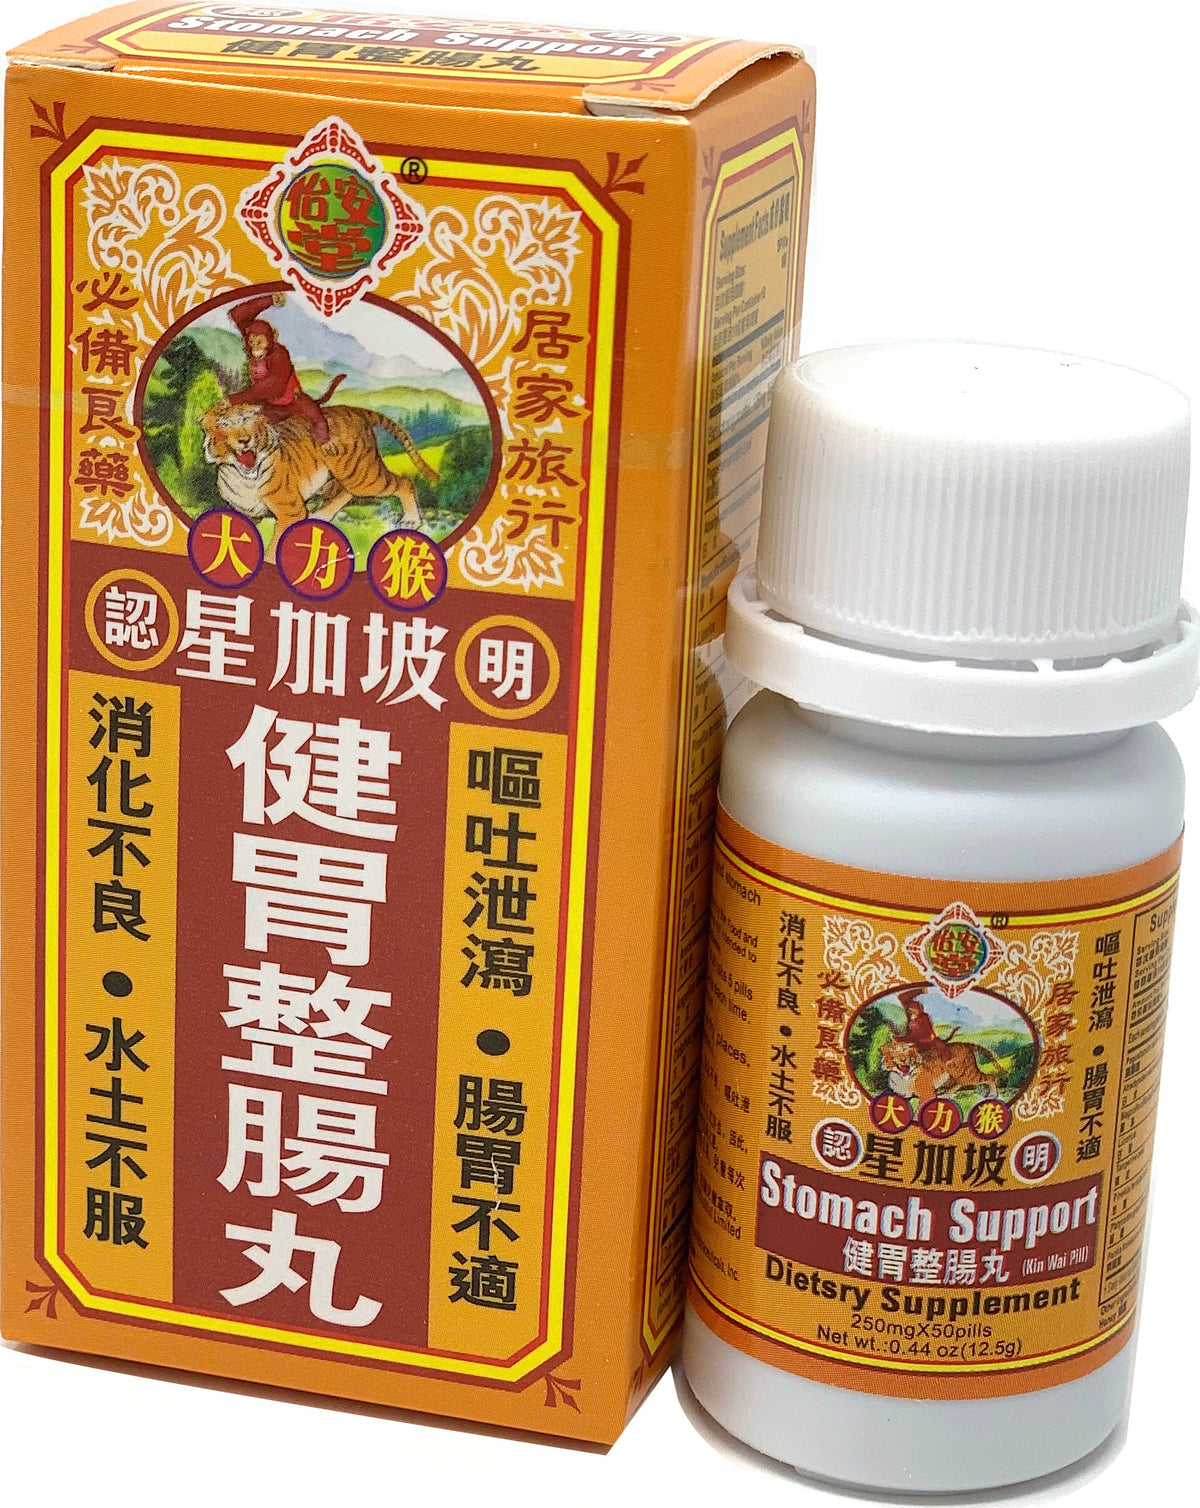 Power Monkey Stomach Support (Kin Wai Pill)